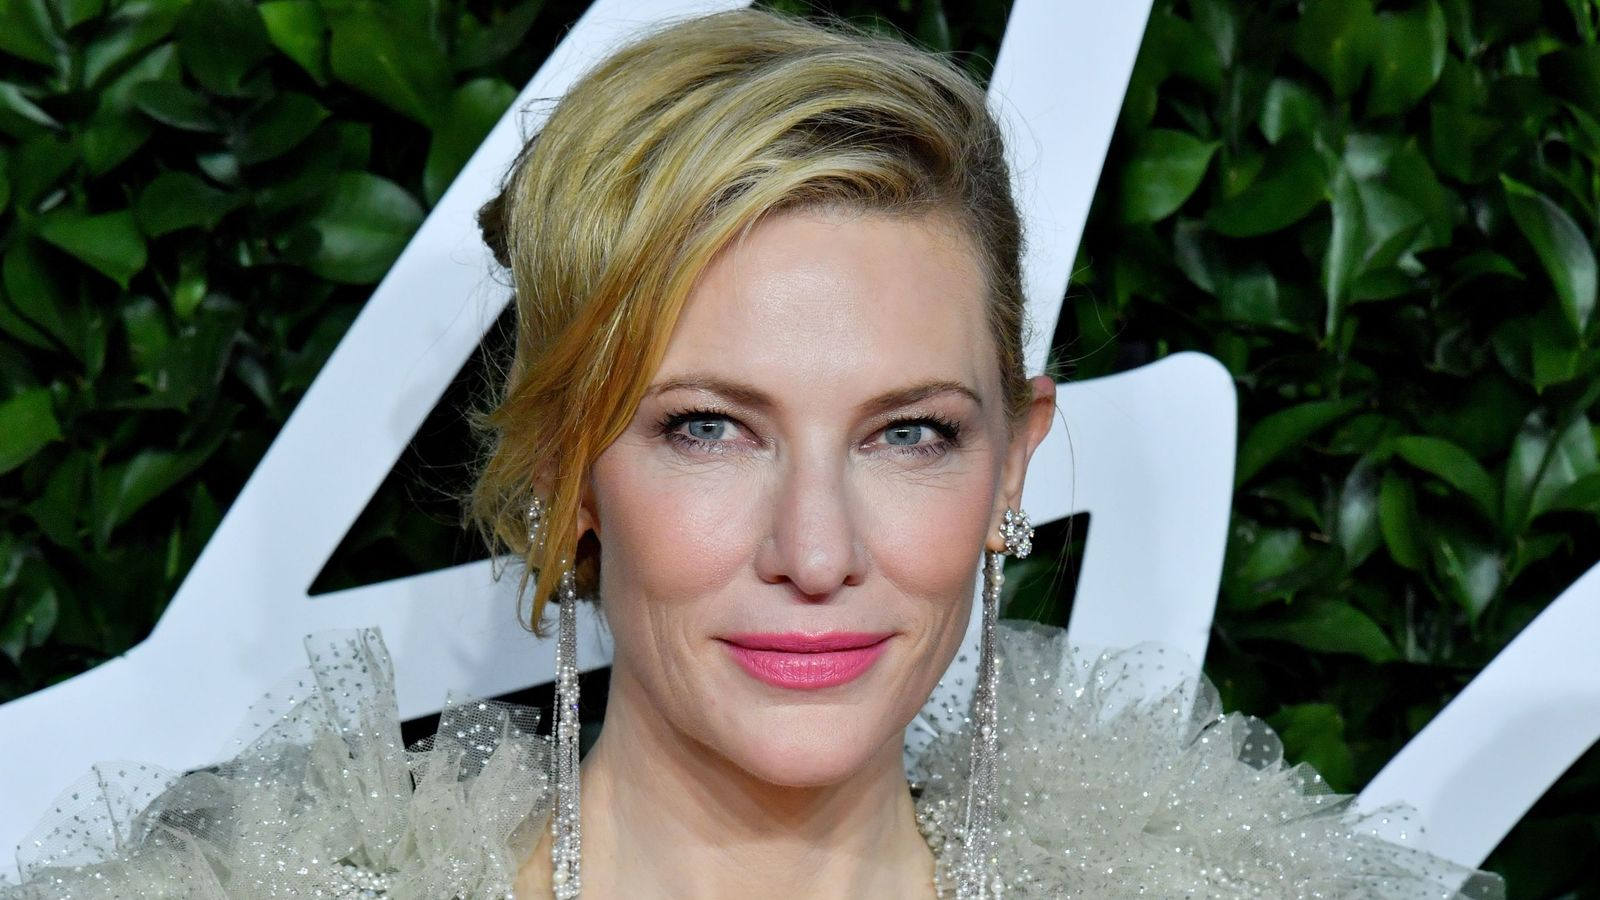 Cate Blanchett 'nicks head' in chainsaw accident during lockdown - Sky News